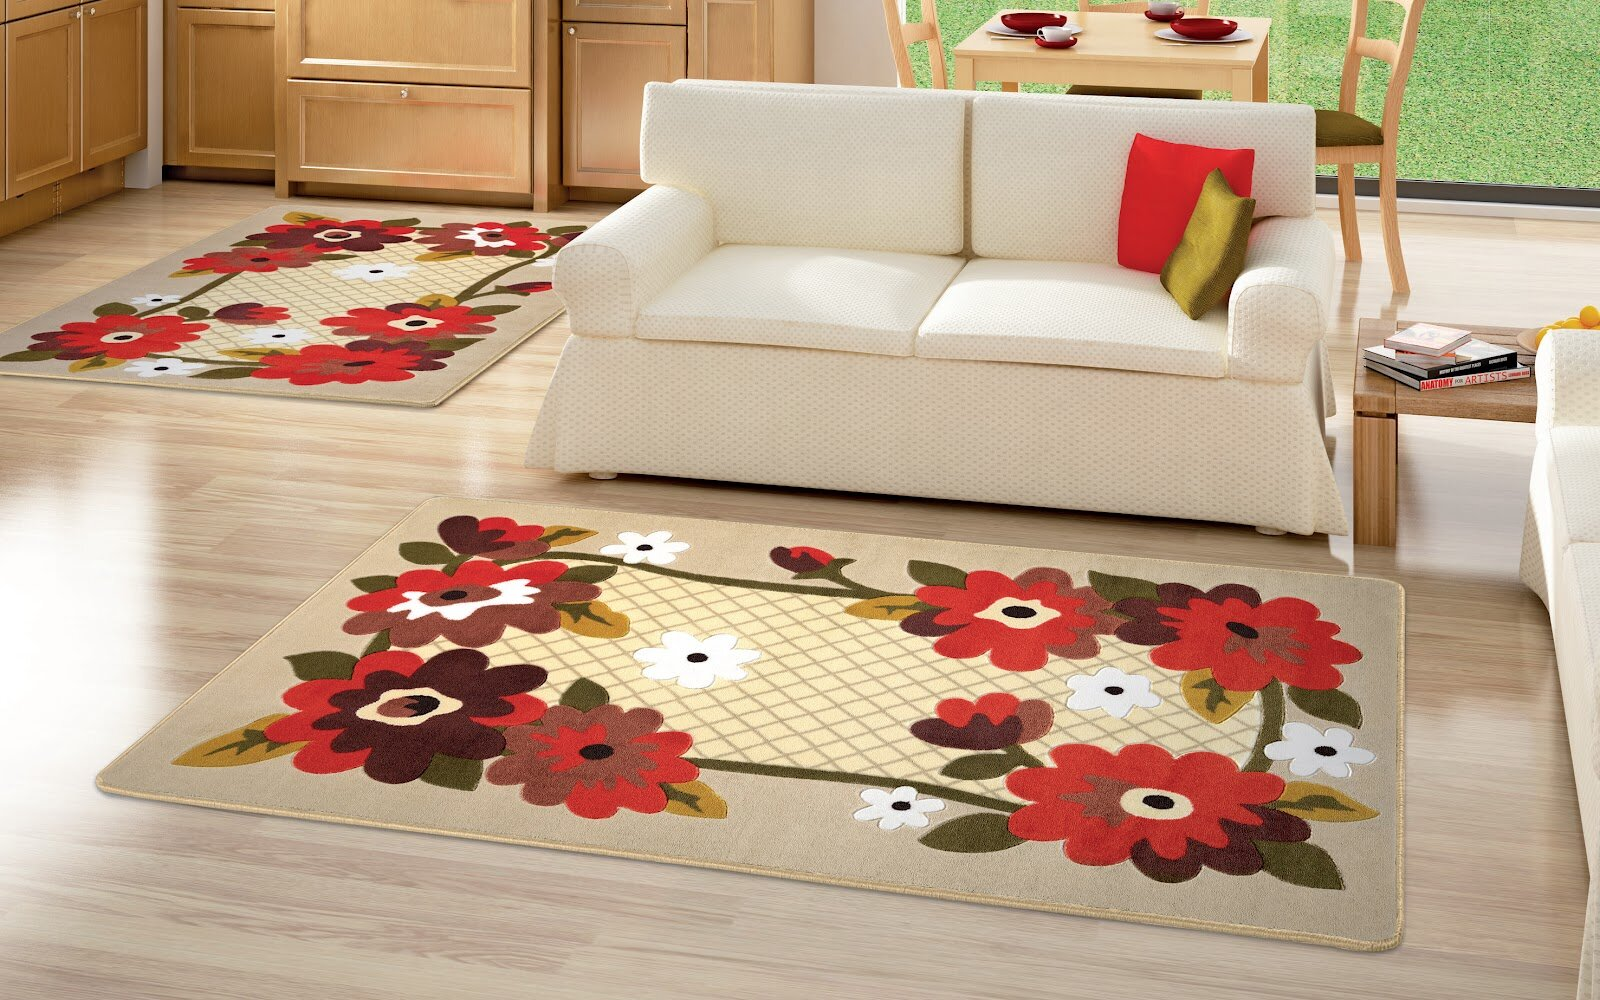 Beautiful Carpet Models | Decoration, Home Goods, Jewelry Design